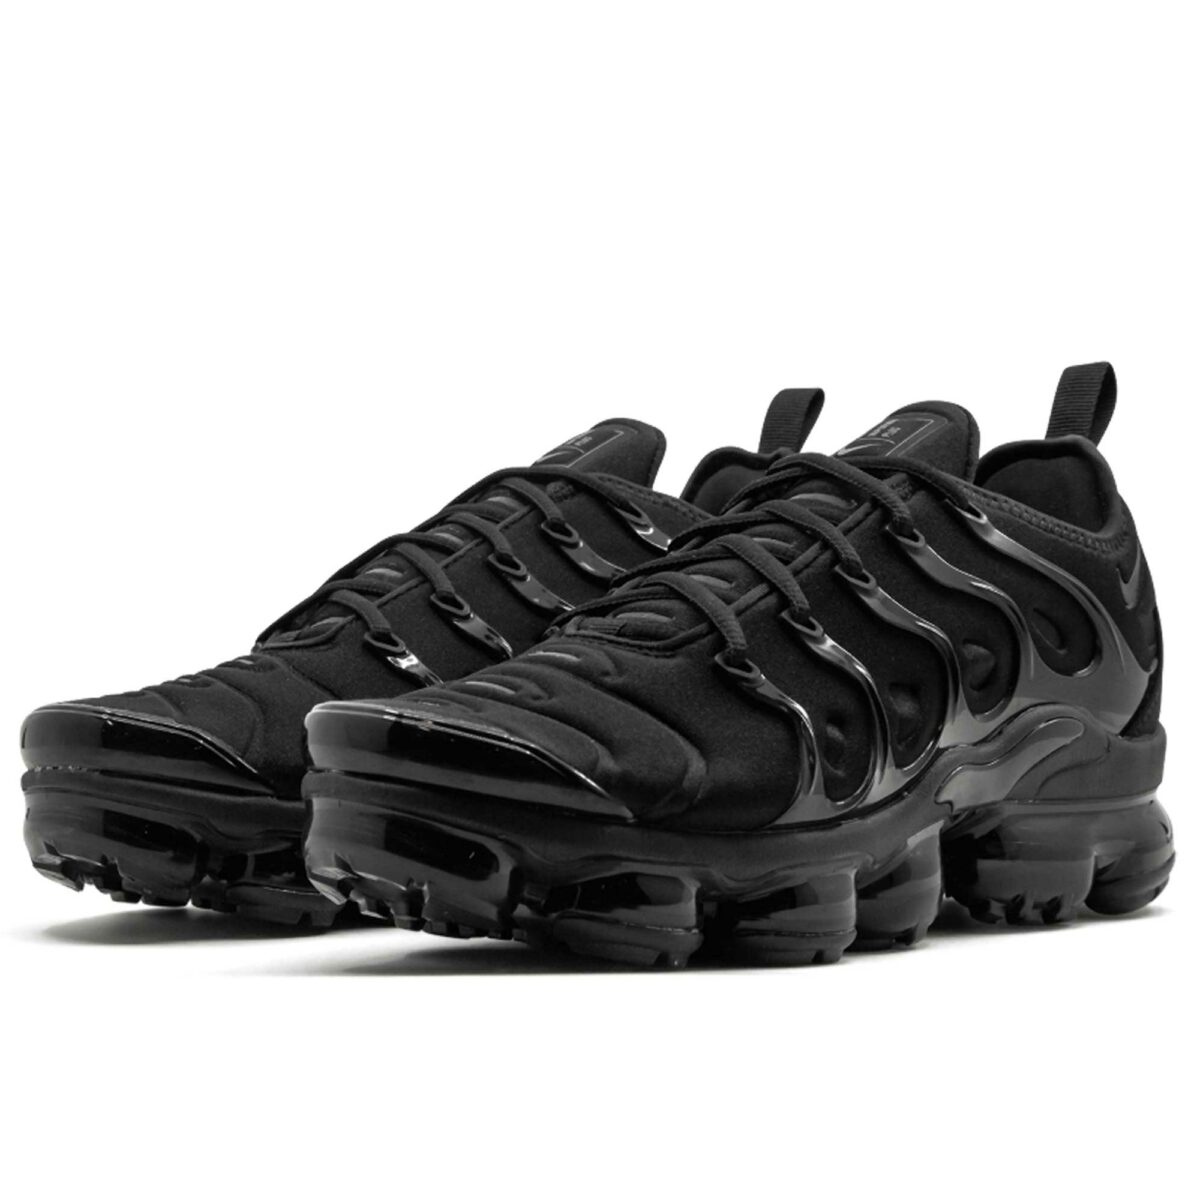 nike air vapormax plus black 924453_004 купить